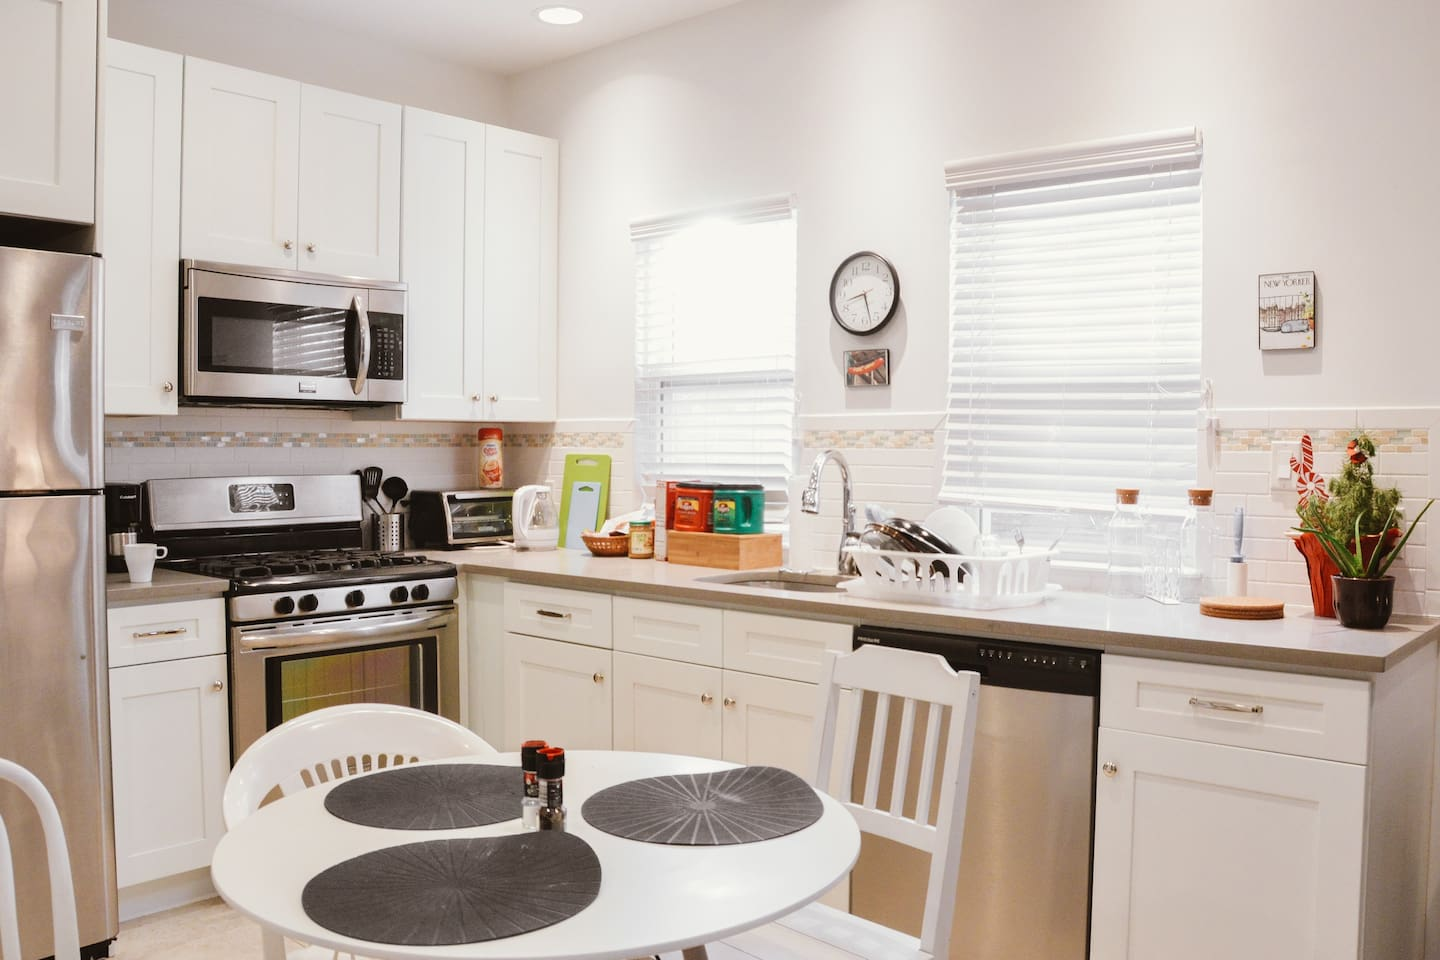 The kitchen is the center of the apartment.  It has a 5 burner stove, an oven, a microwave, a toaster oven, a  dishwasher, a full sized refrigerator, and two coffee makers.